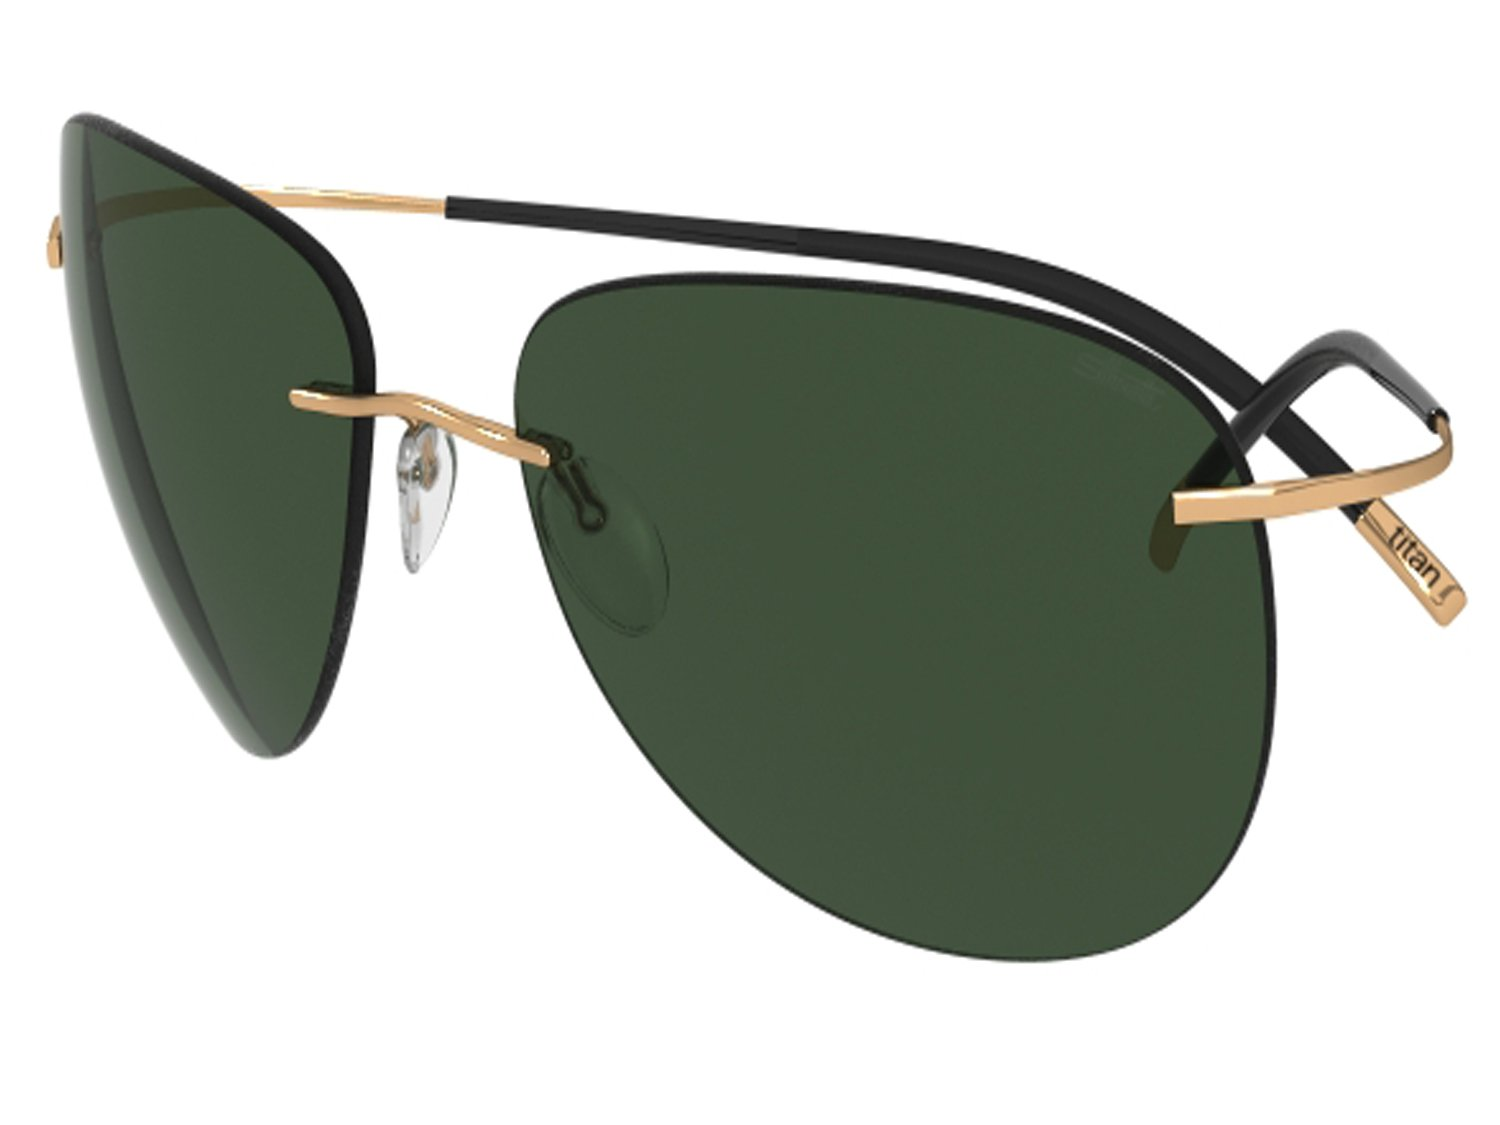 Silhouette Sunglasses Titan Minimal ART The Icon 8697 medium to large fit (gold shiny / green lenses) by SILHOUETTE optical